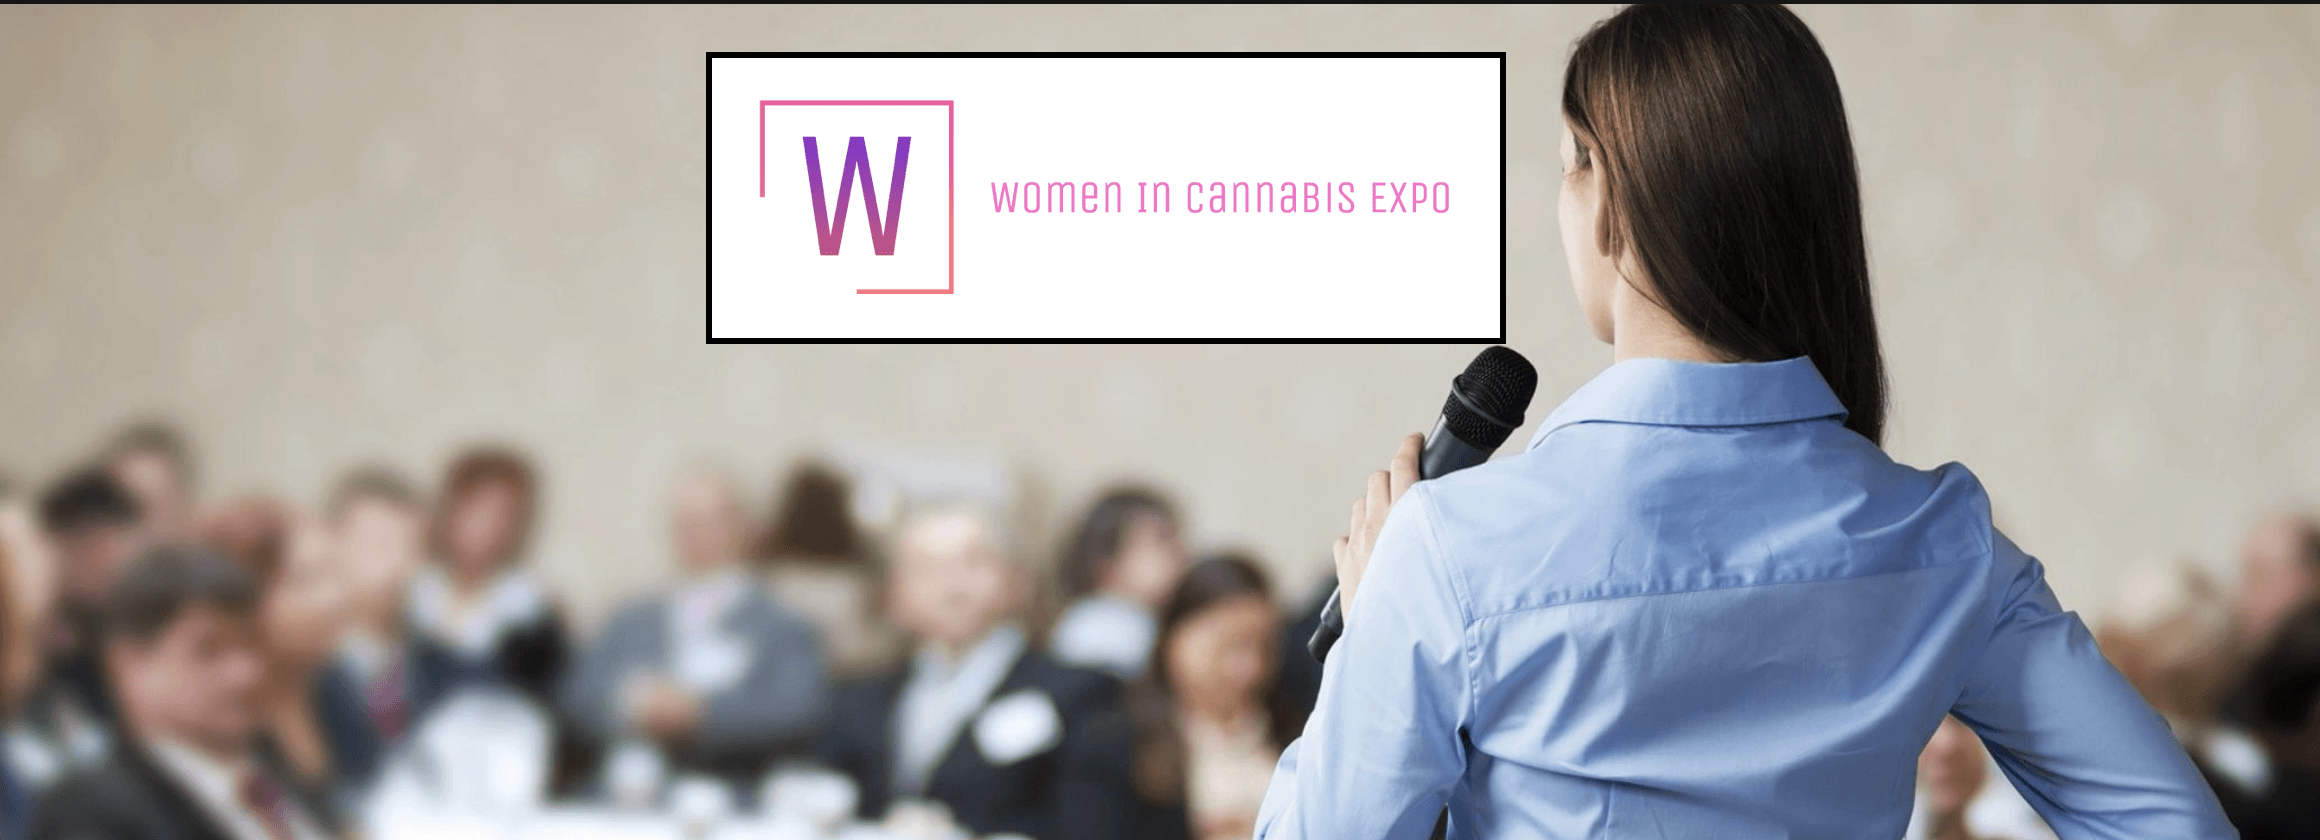 Women in Cannabis Expo